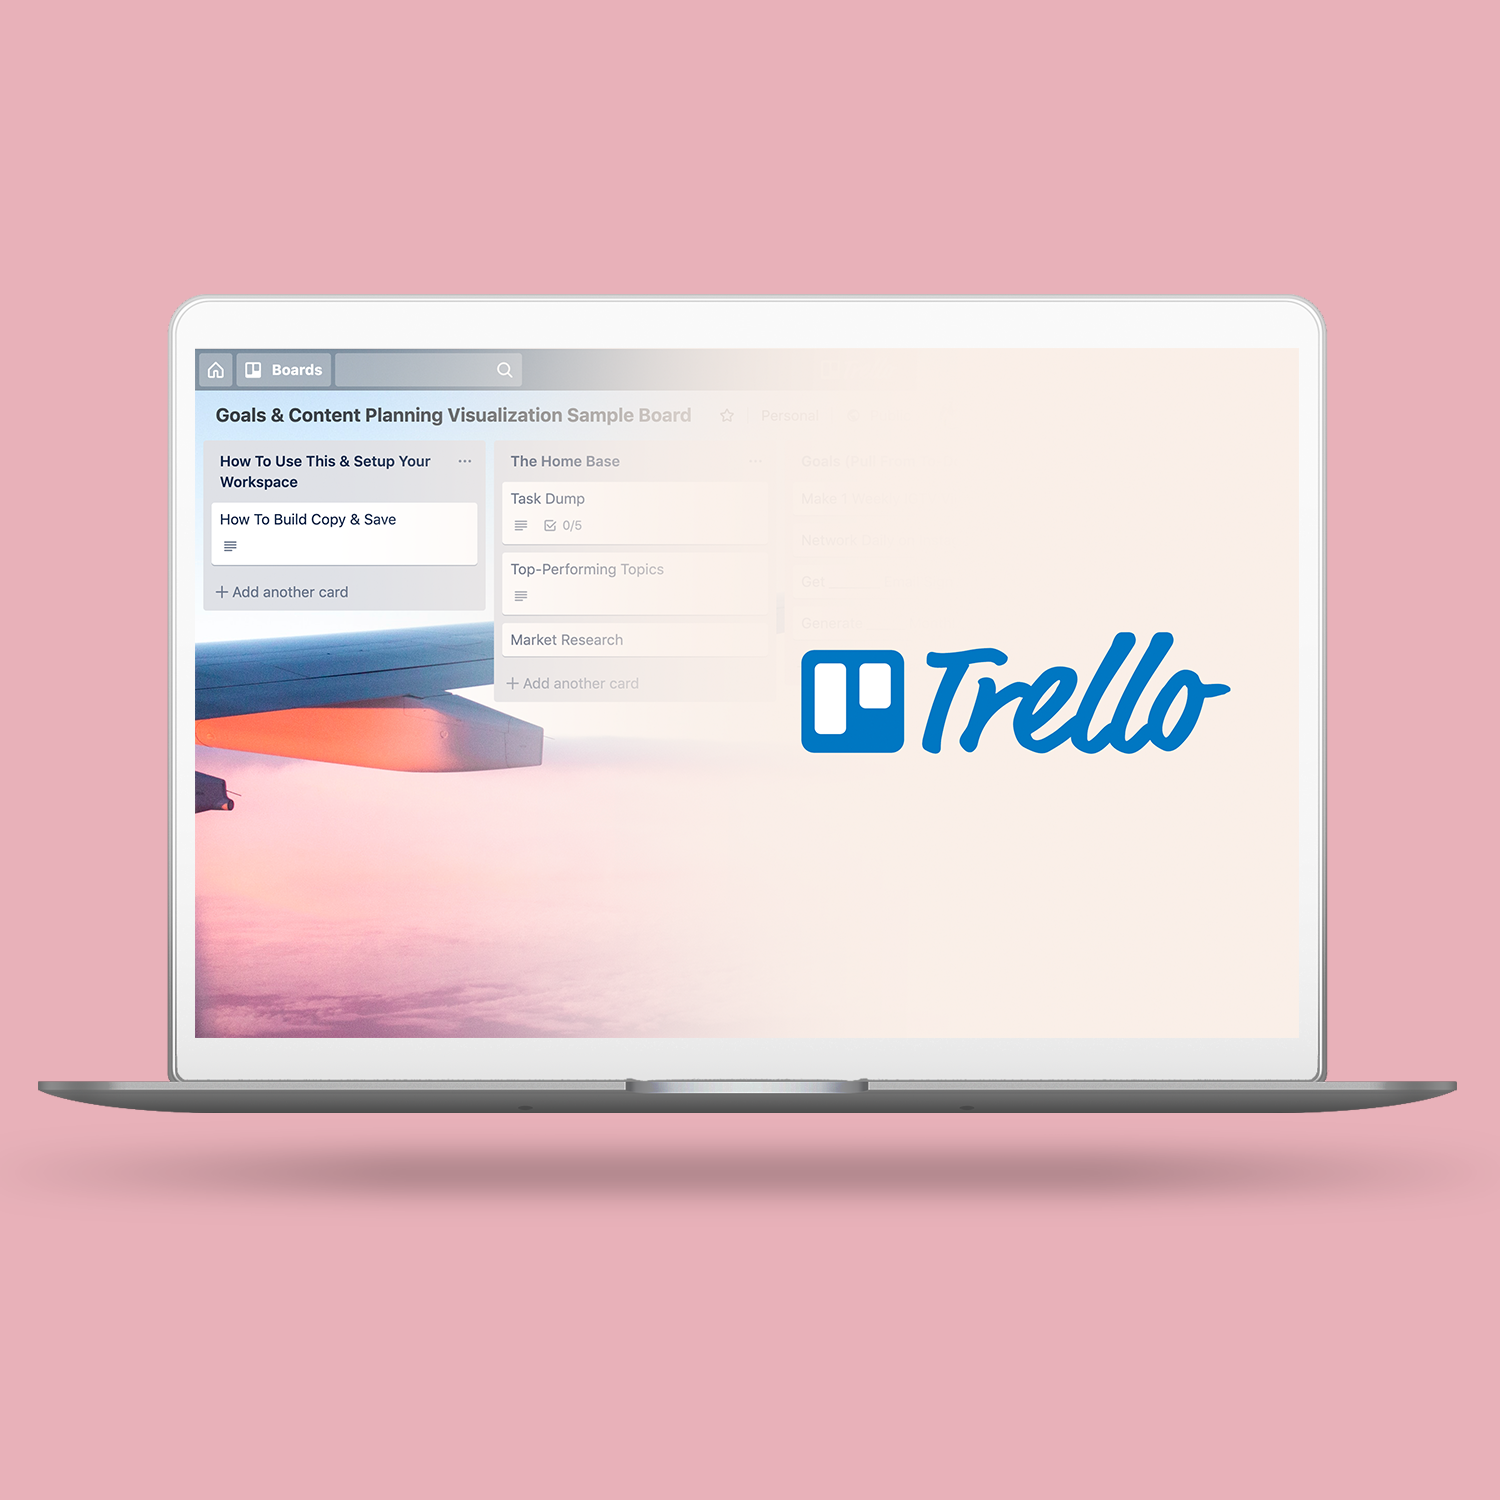 Build-a-Workflow Goal-Oriented Content Creation Trello Workspace Template - Take back control over your time with the Trello workspace template. Designed to give you clarity, confidence, and content that's connected to you & your goals.Say hello to your brand new Monday morning where you're not just winging it and barely getting by. More time, more opportunities, more happy you, more happy clients…